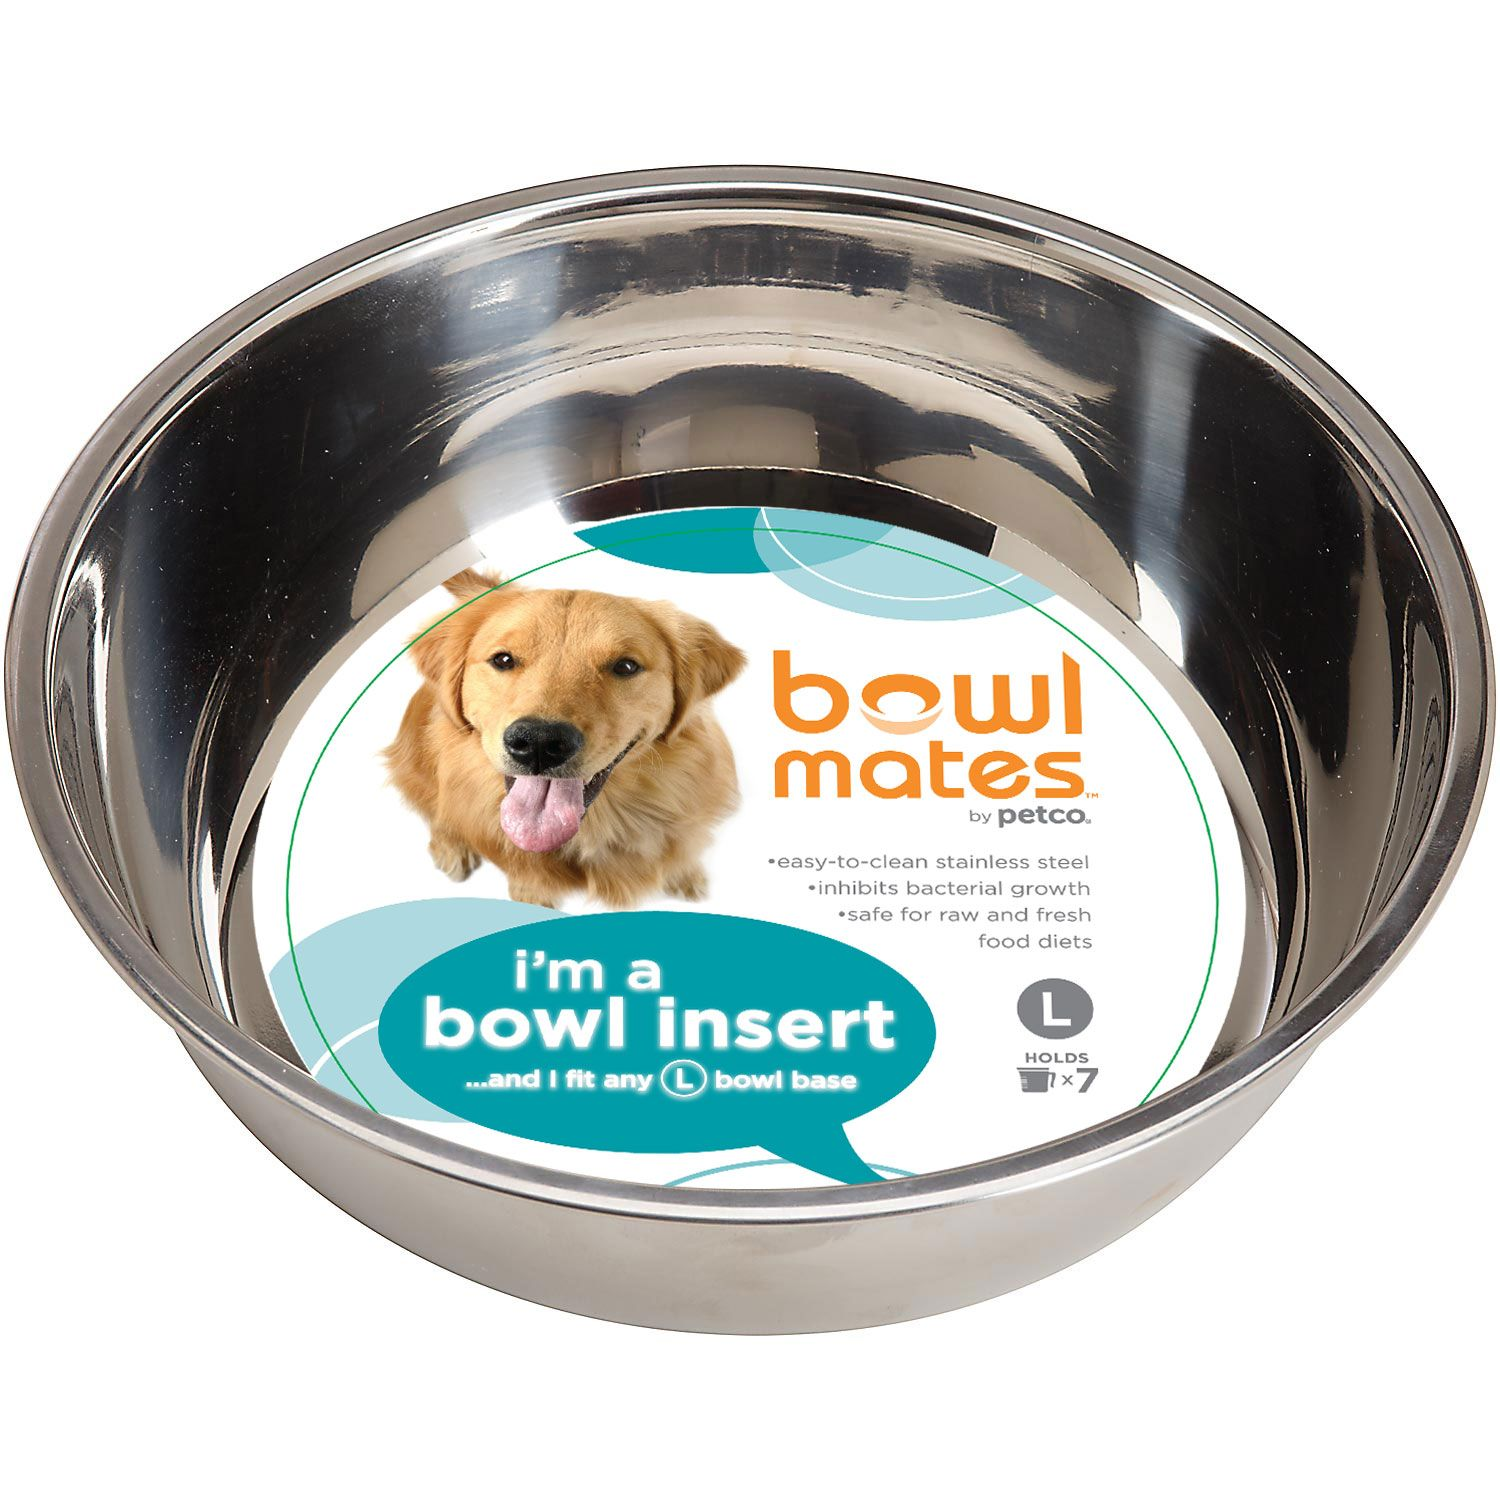 Bowlmates By Petco Large Stainless Steel Bowl Insert Petco